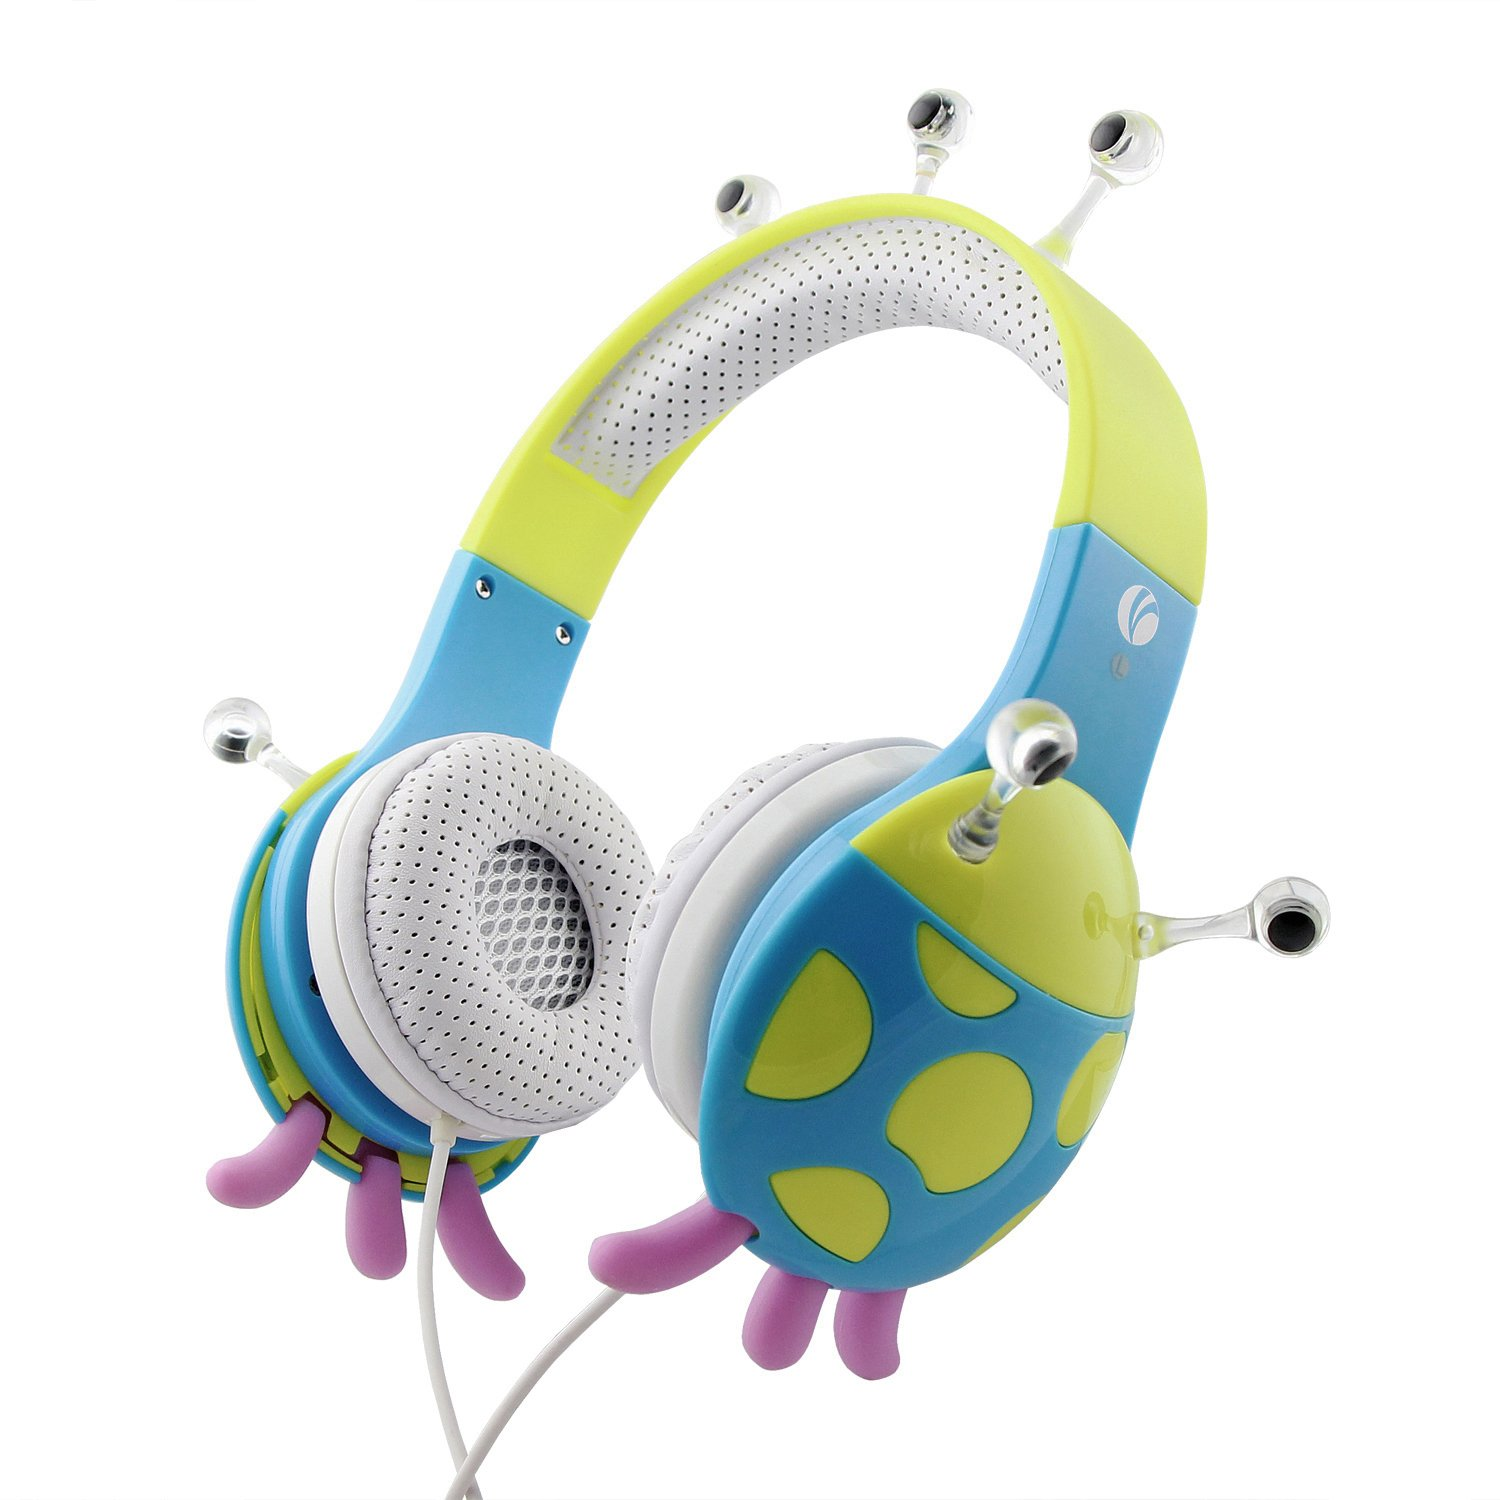 VCOM Kids Headphones, Wired Over Ear Earphones Volume Limiting Headset by Ladybug Design with 3.5mm Jack for iPad iPhone Smartphones Tablet PC Kindle - Blue/Green